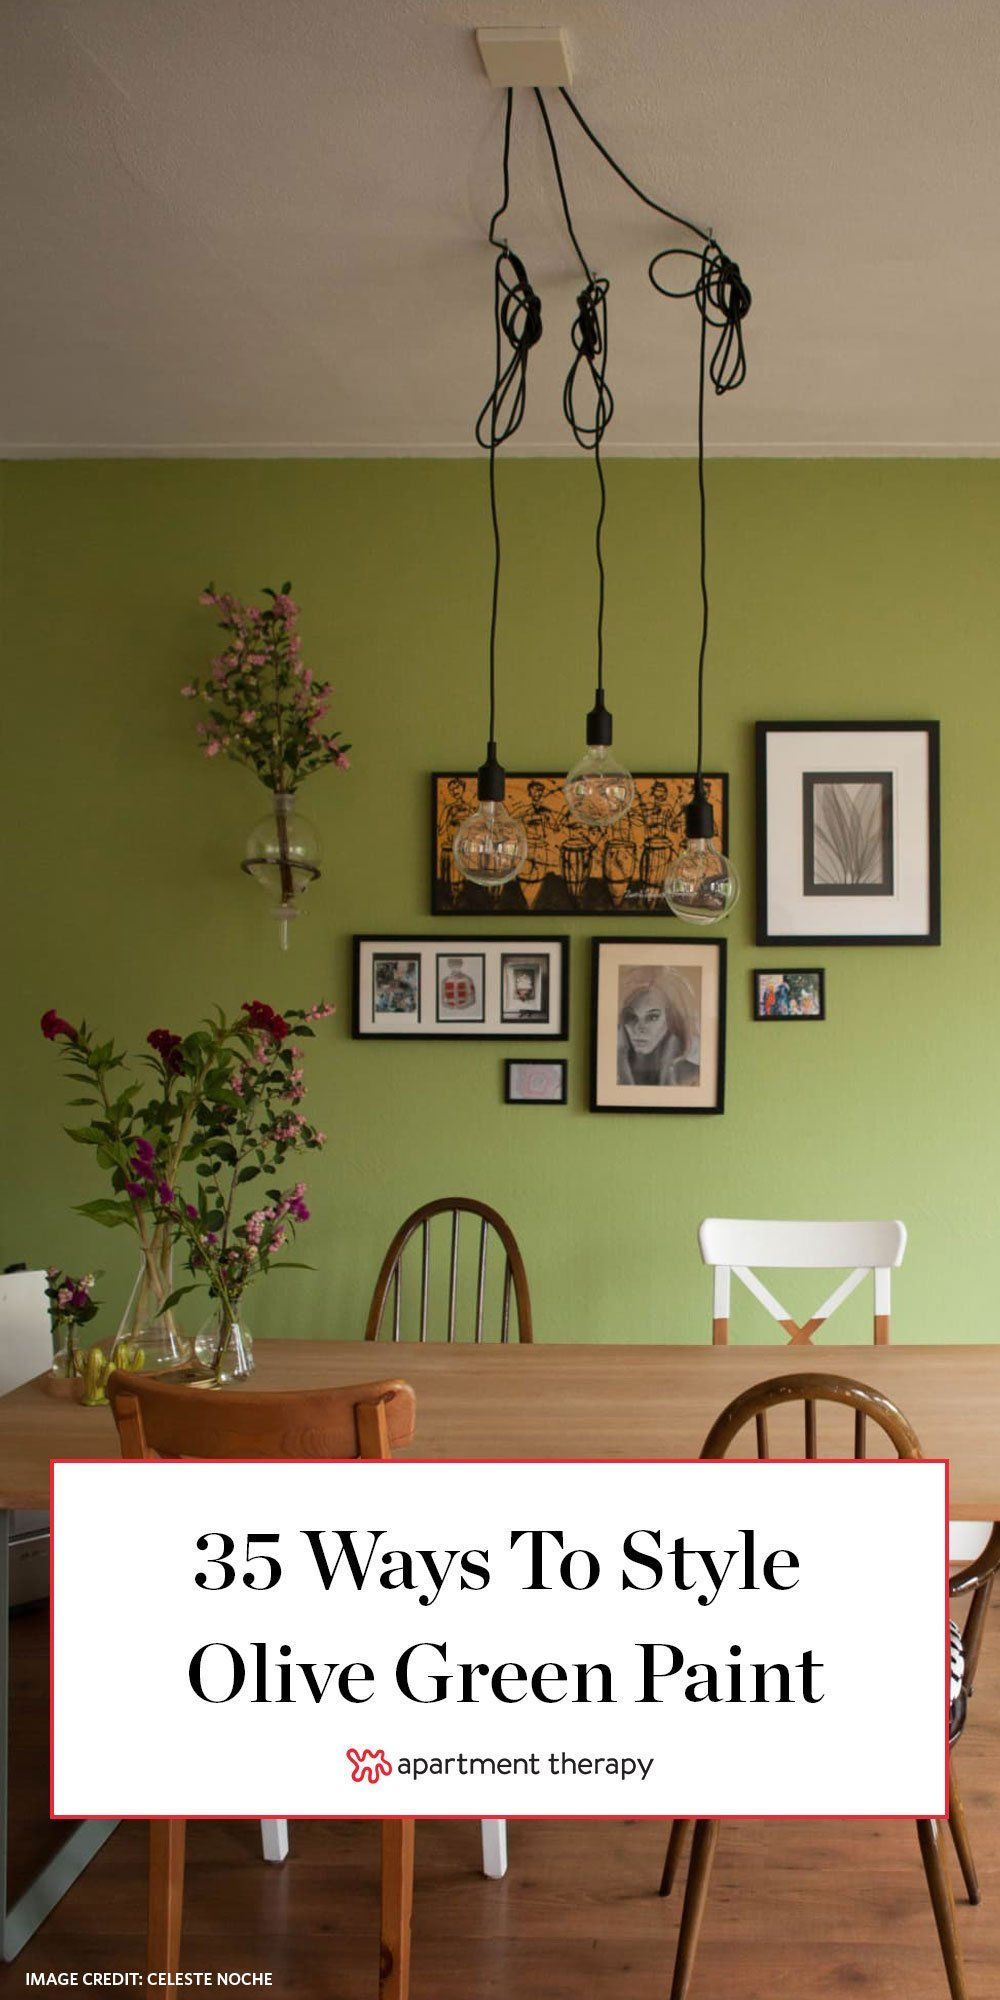 35 Olive Green Paint Ideas That Ll Make Any Room Feel More Sophisticated Olive Green Paints Green Painted Walls Green Dining Room Walls Olive green paint living room